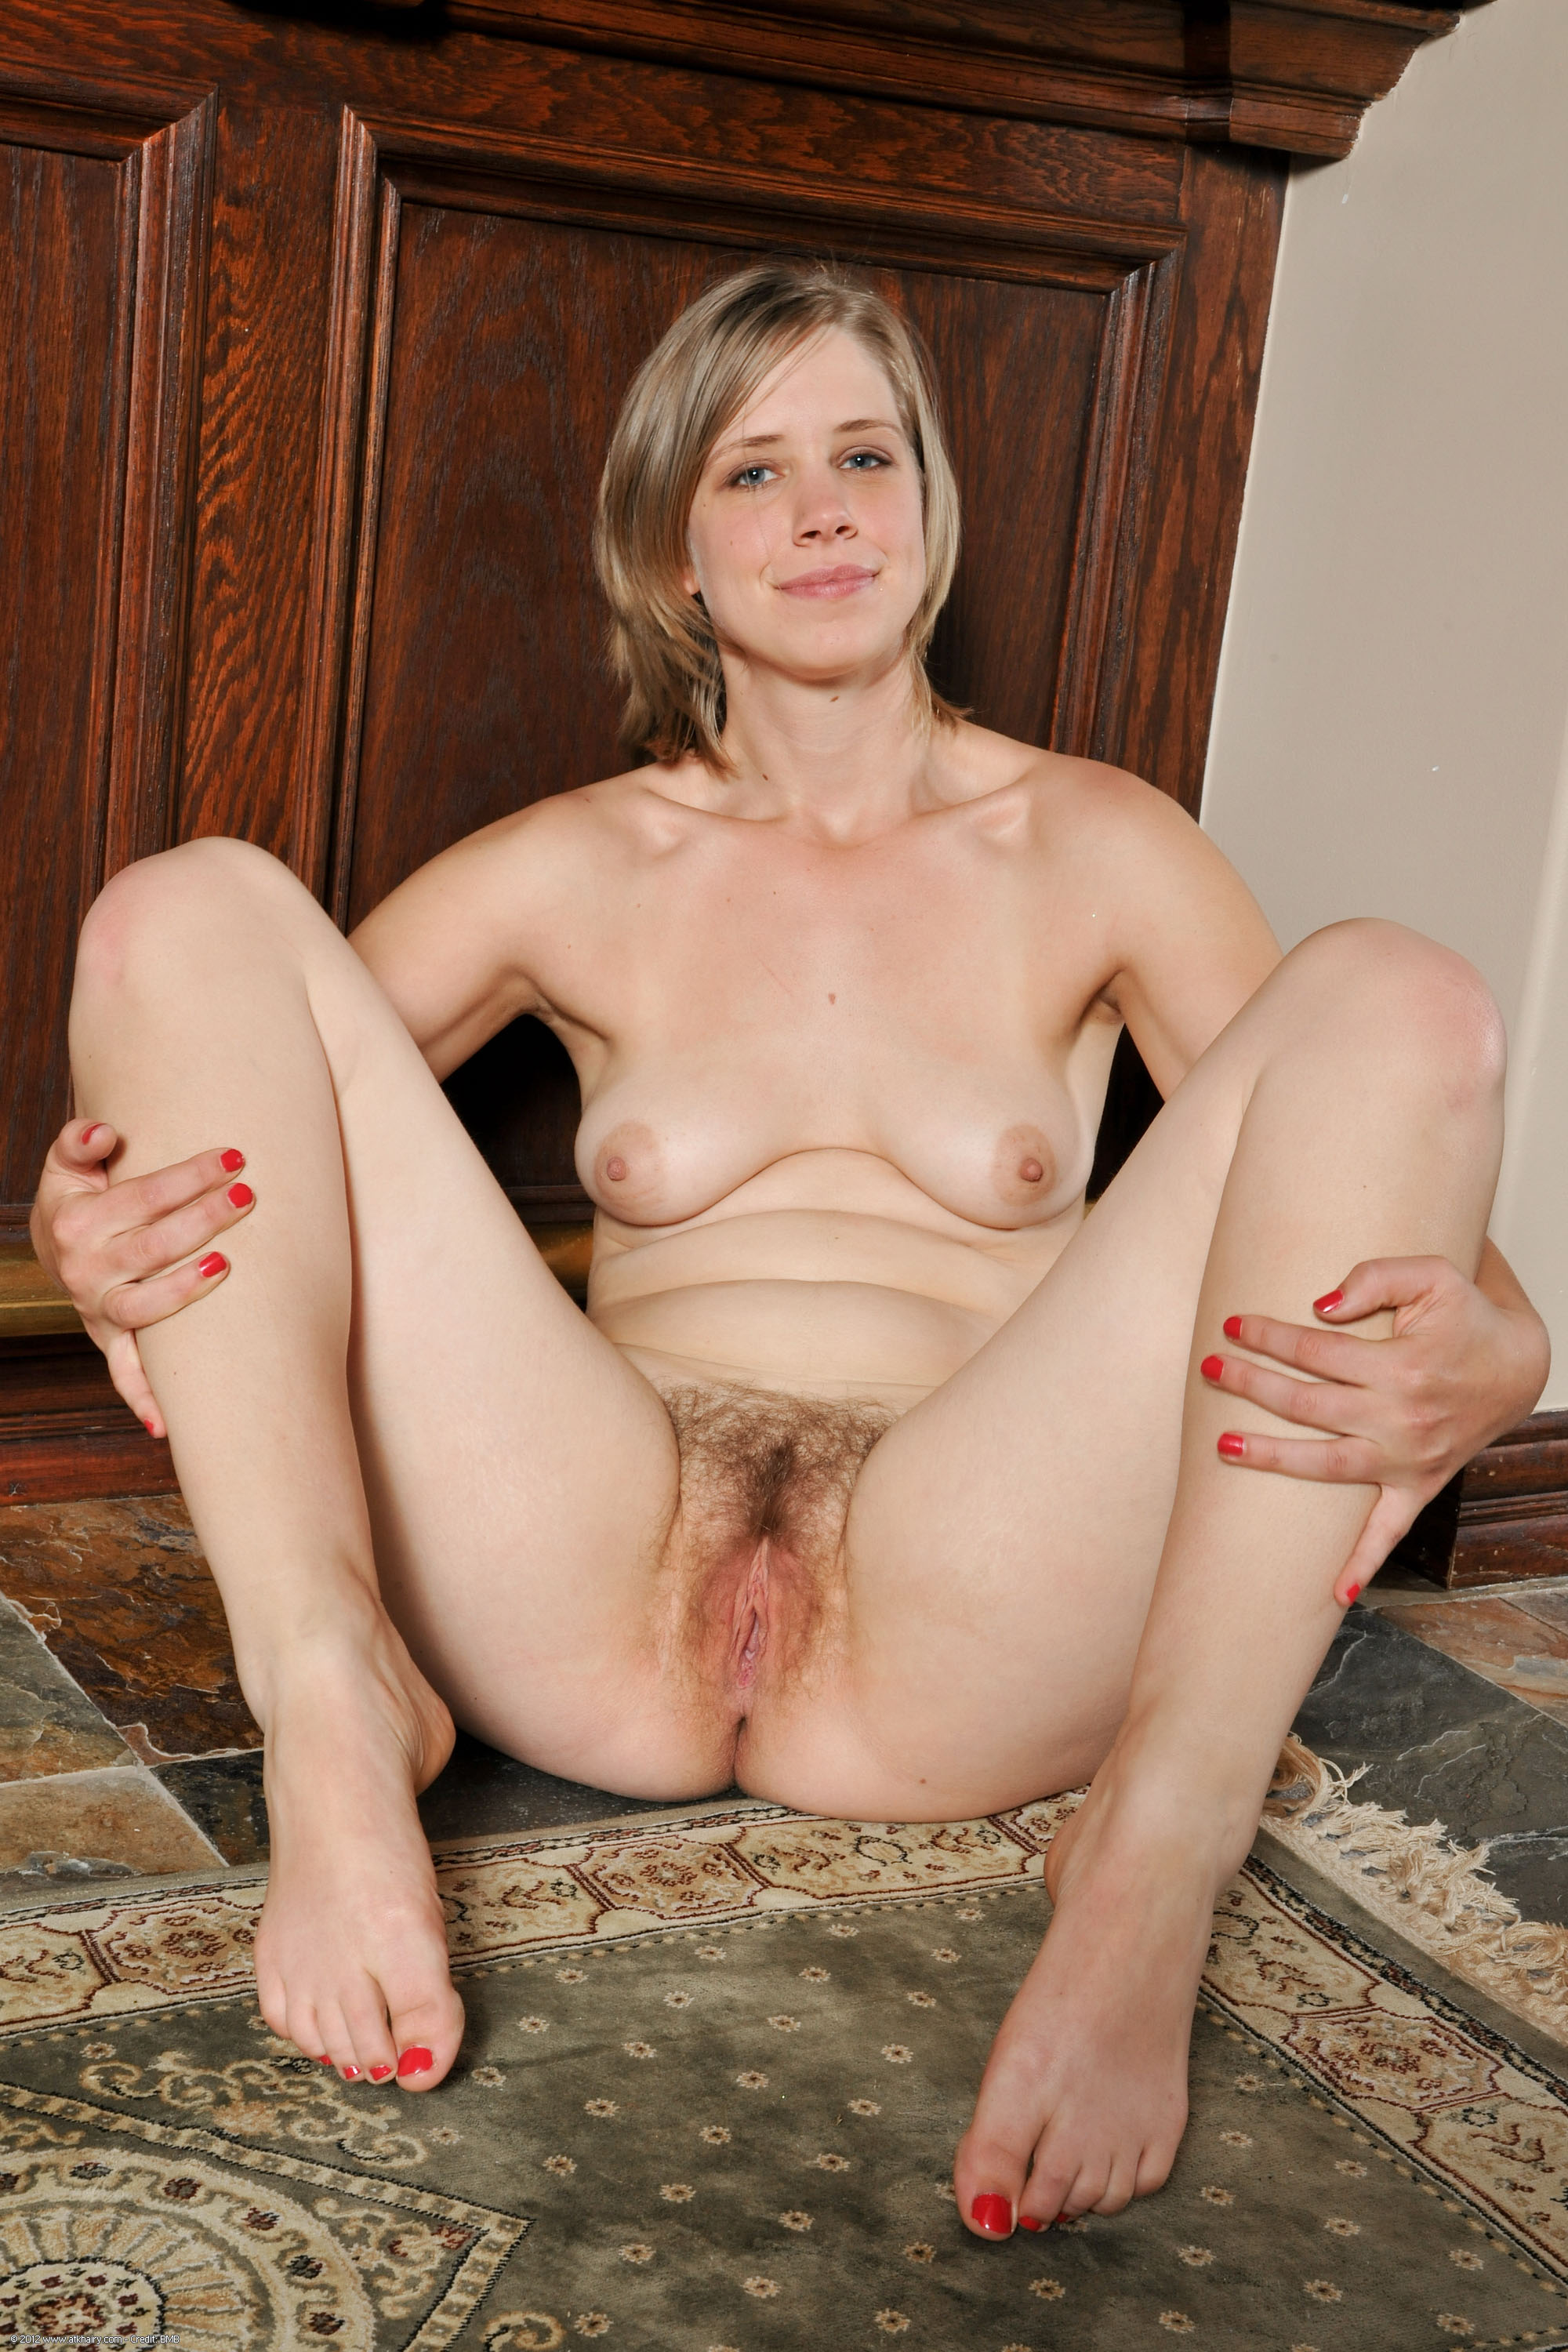 Amazing Girl With Natural Hairy Pussy - Free Porn